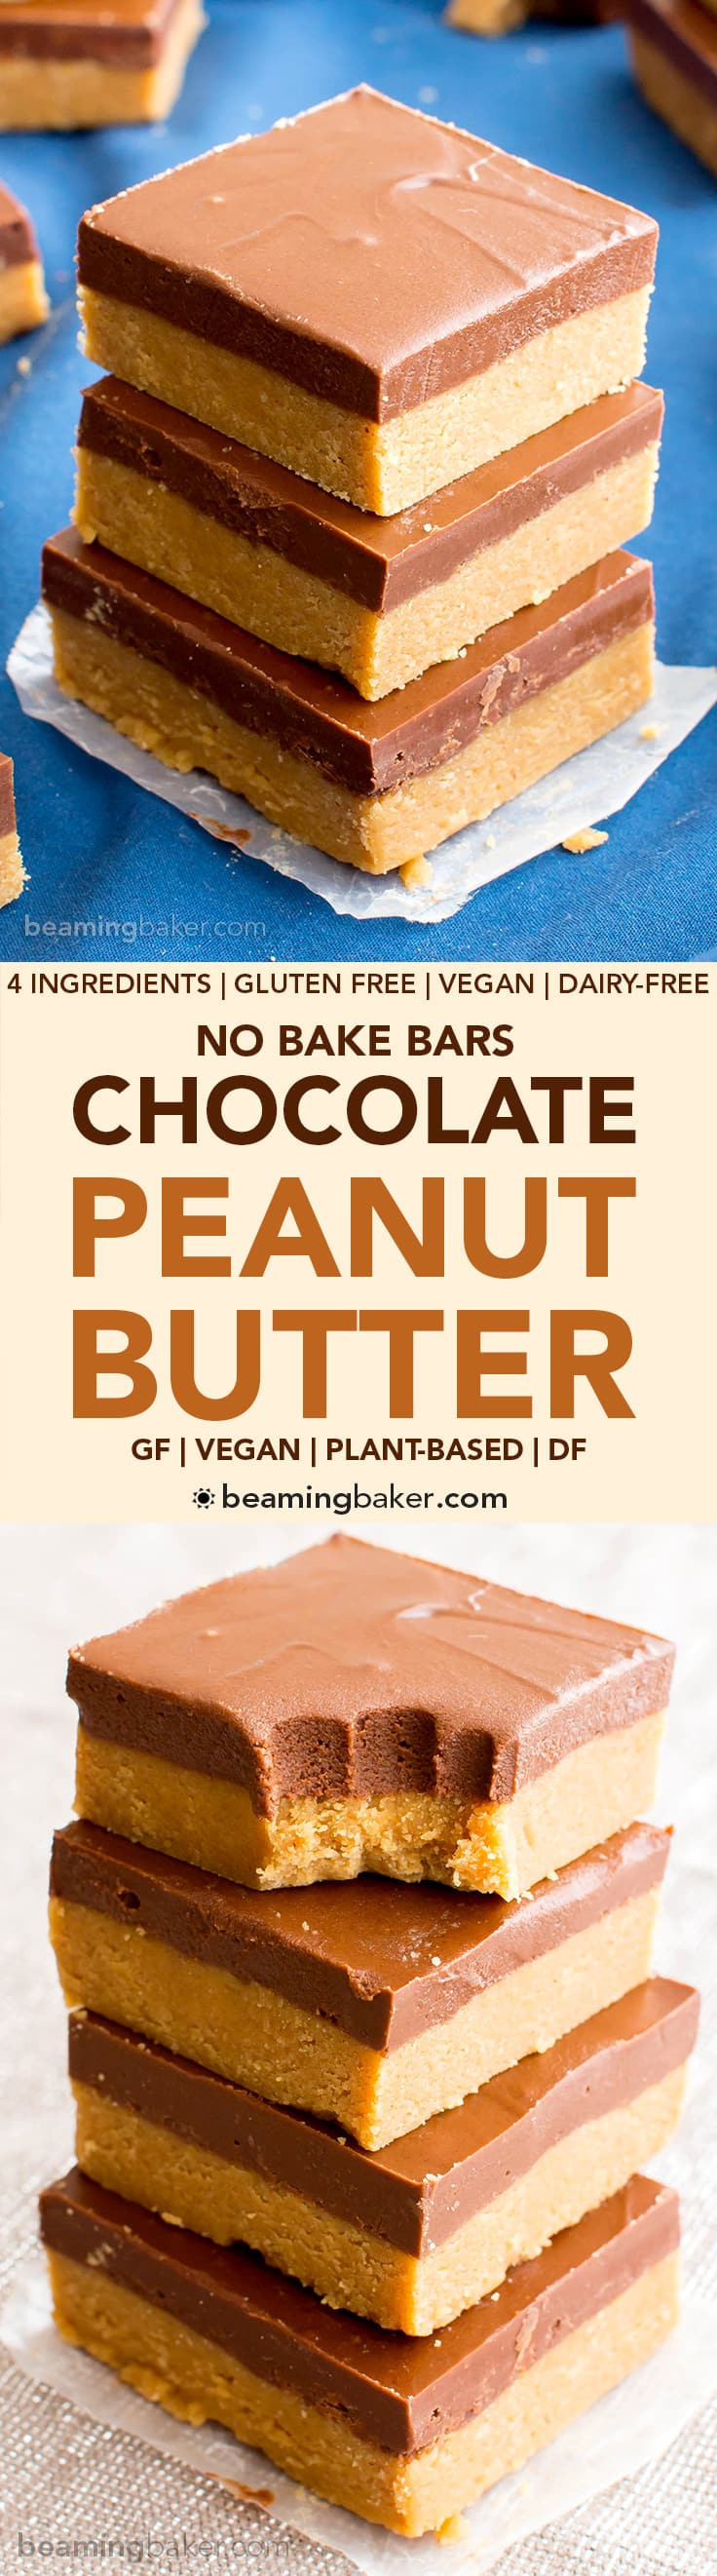 4 Ingredient No Bake Chocolate Peanut Butter Bars (Vegan, Gluten ...